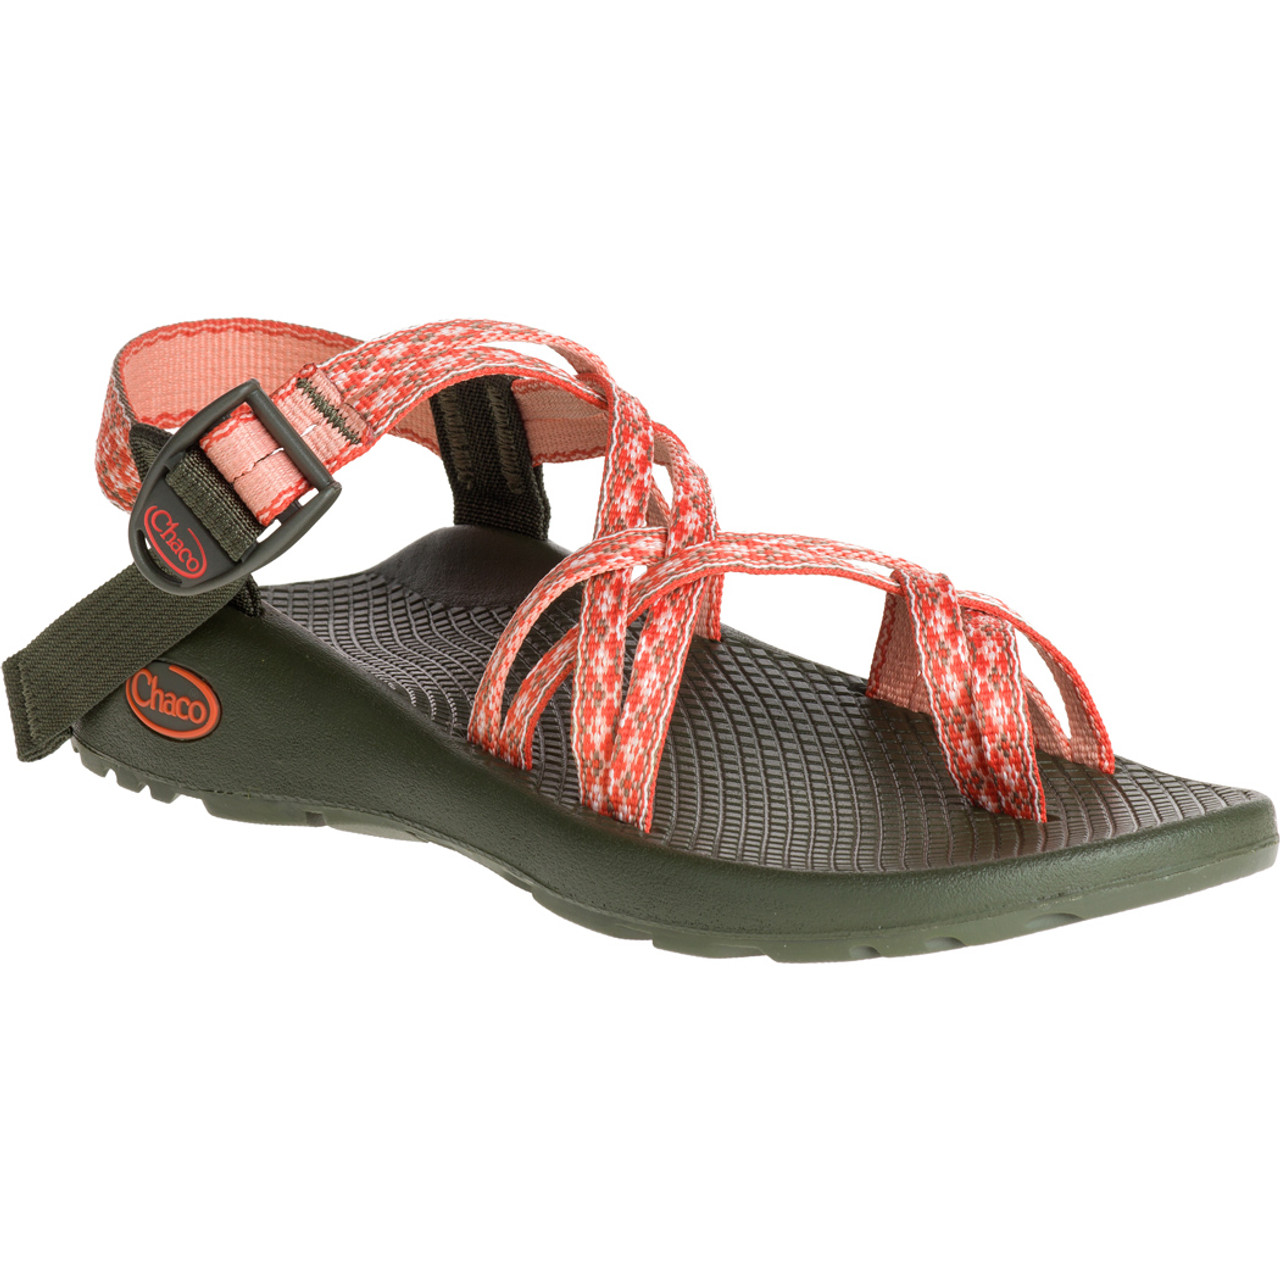 49b1969129c6 Chacos Women s Sandals - ZX 2 Classic - Limerick Nectar - Surf and Dirt